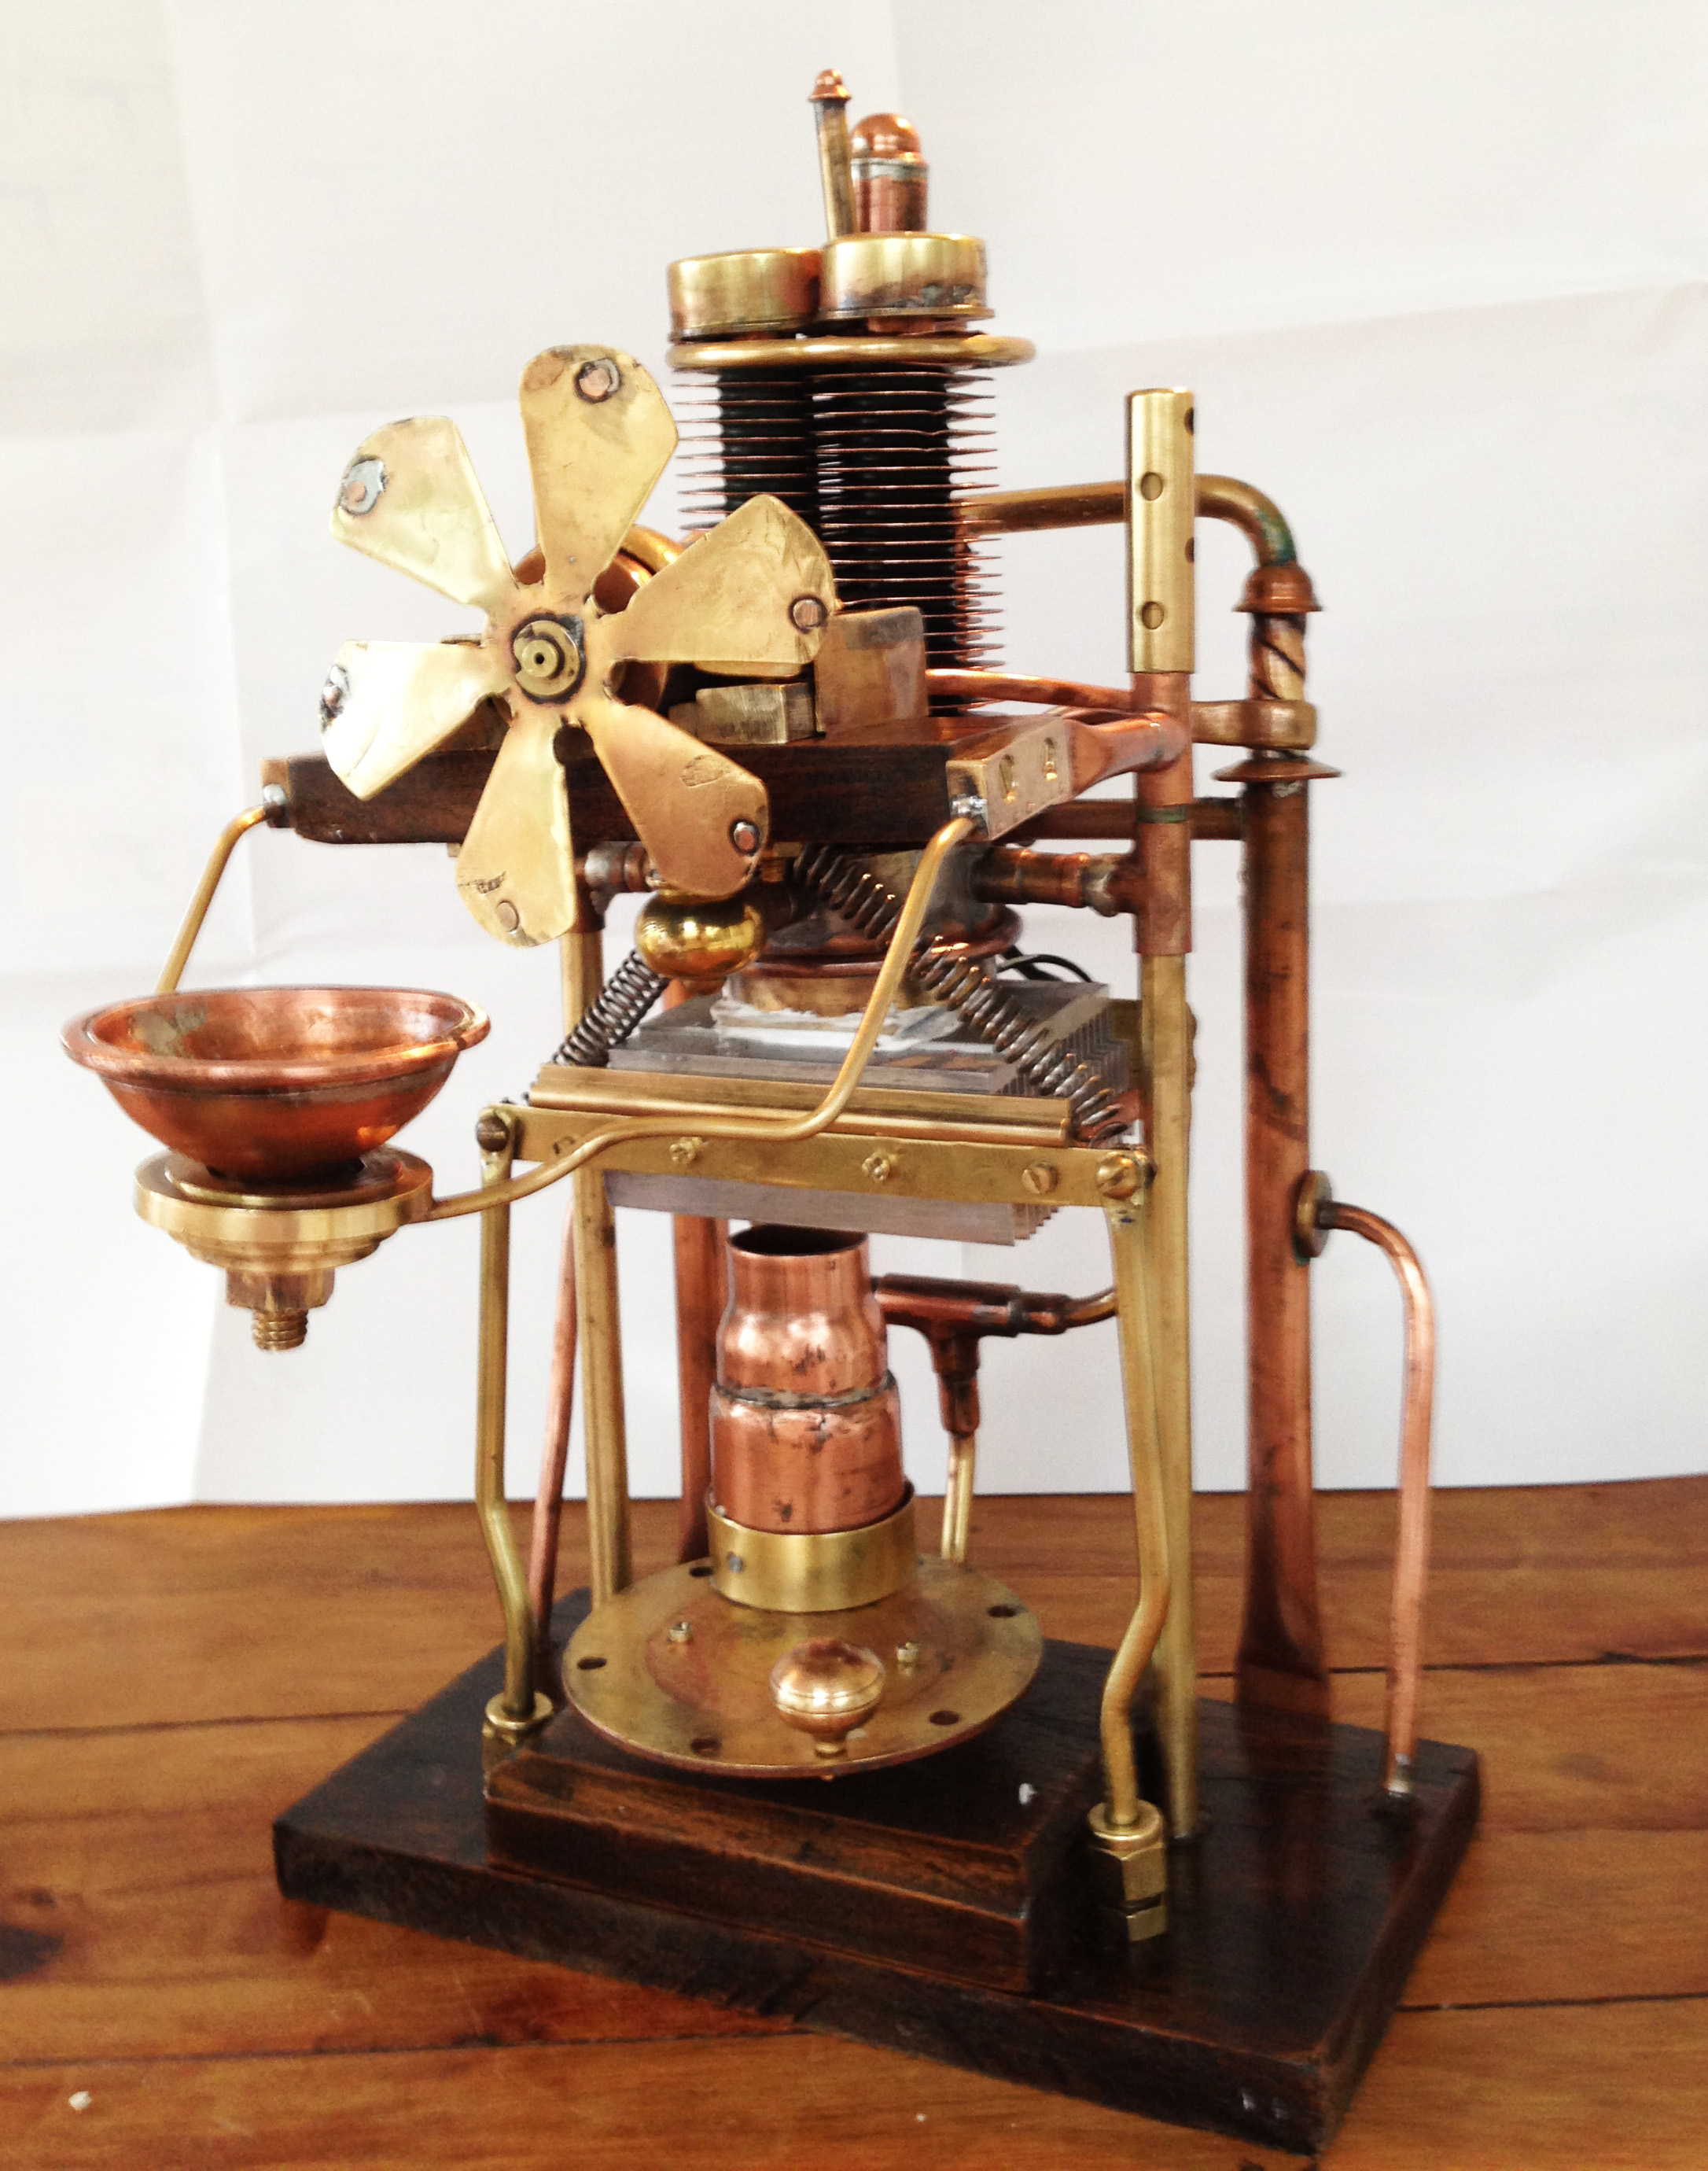 Steampunk Reverse Peltier Machine (aka The electro-mechanical room freshener)